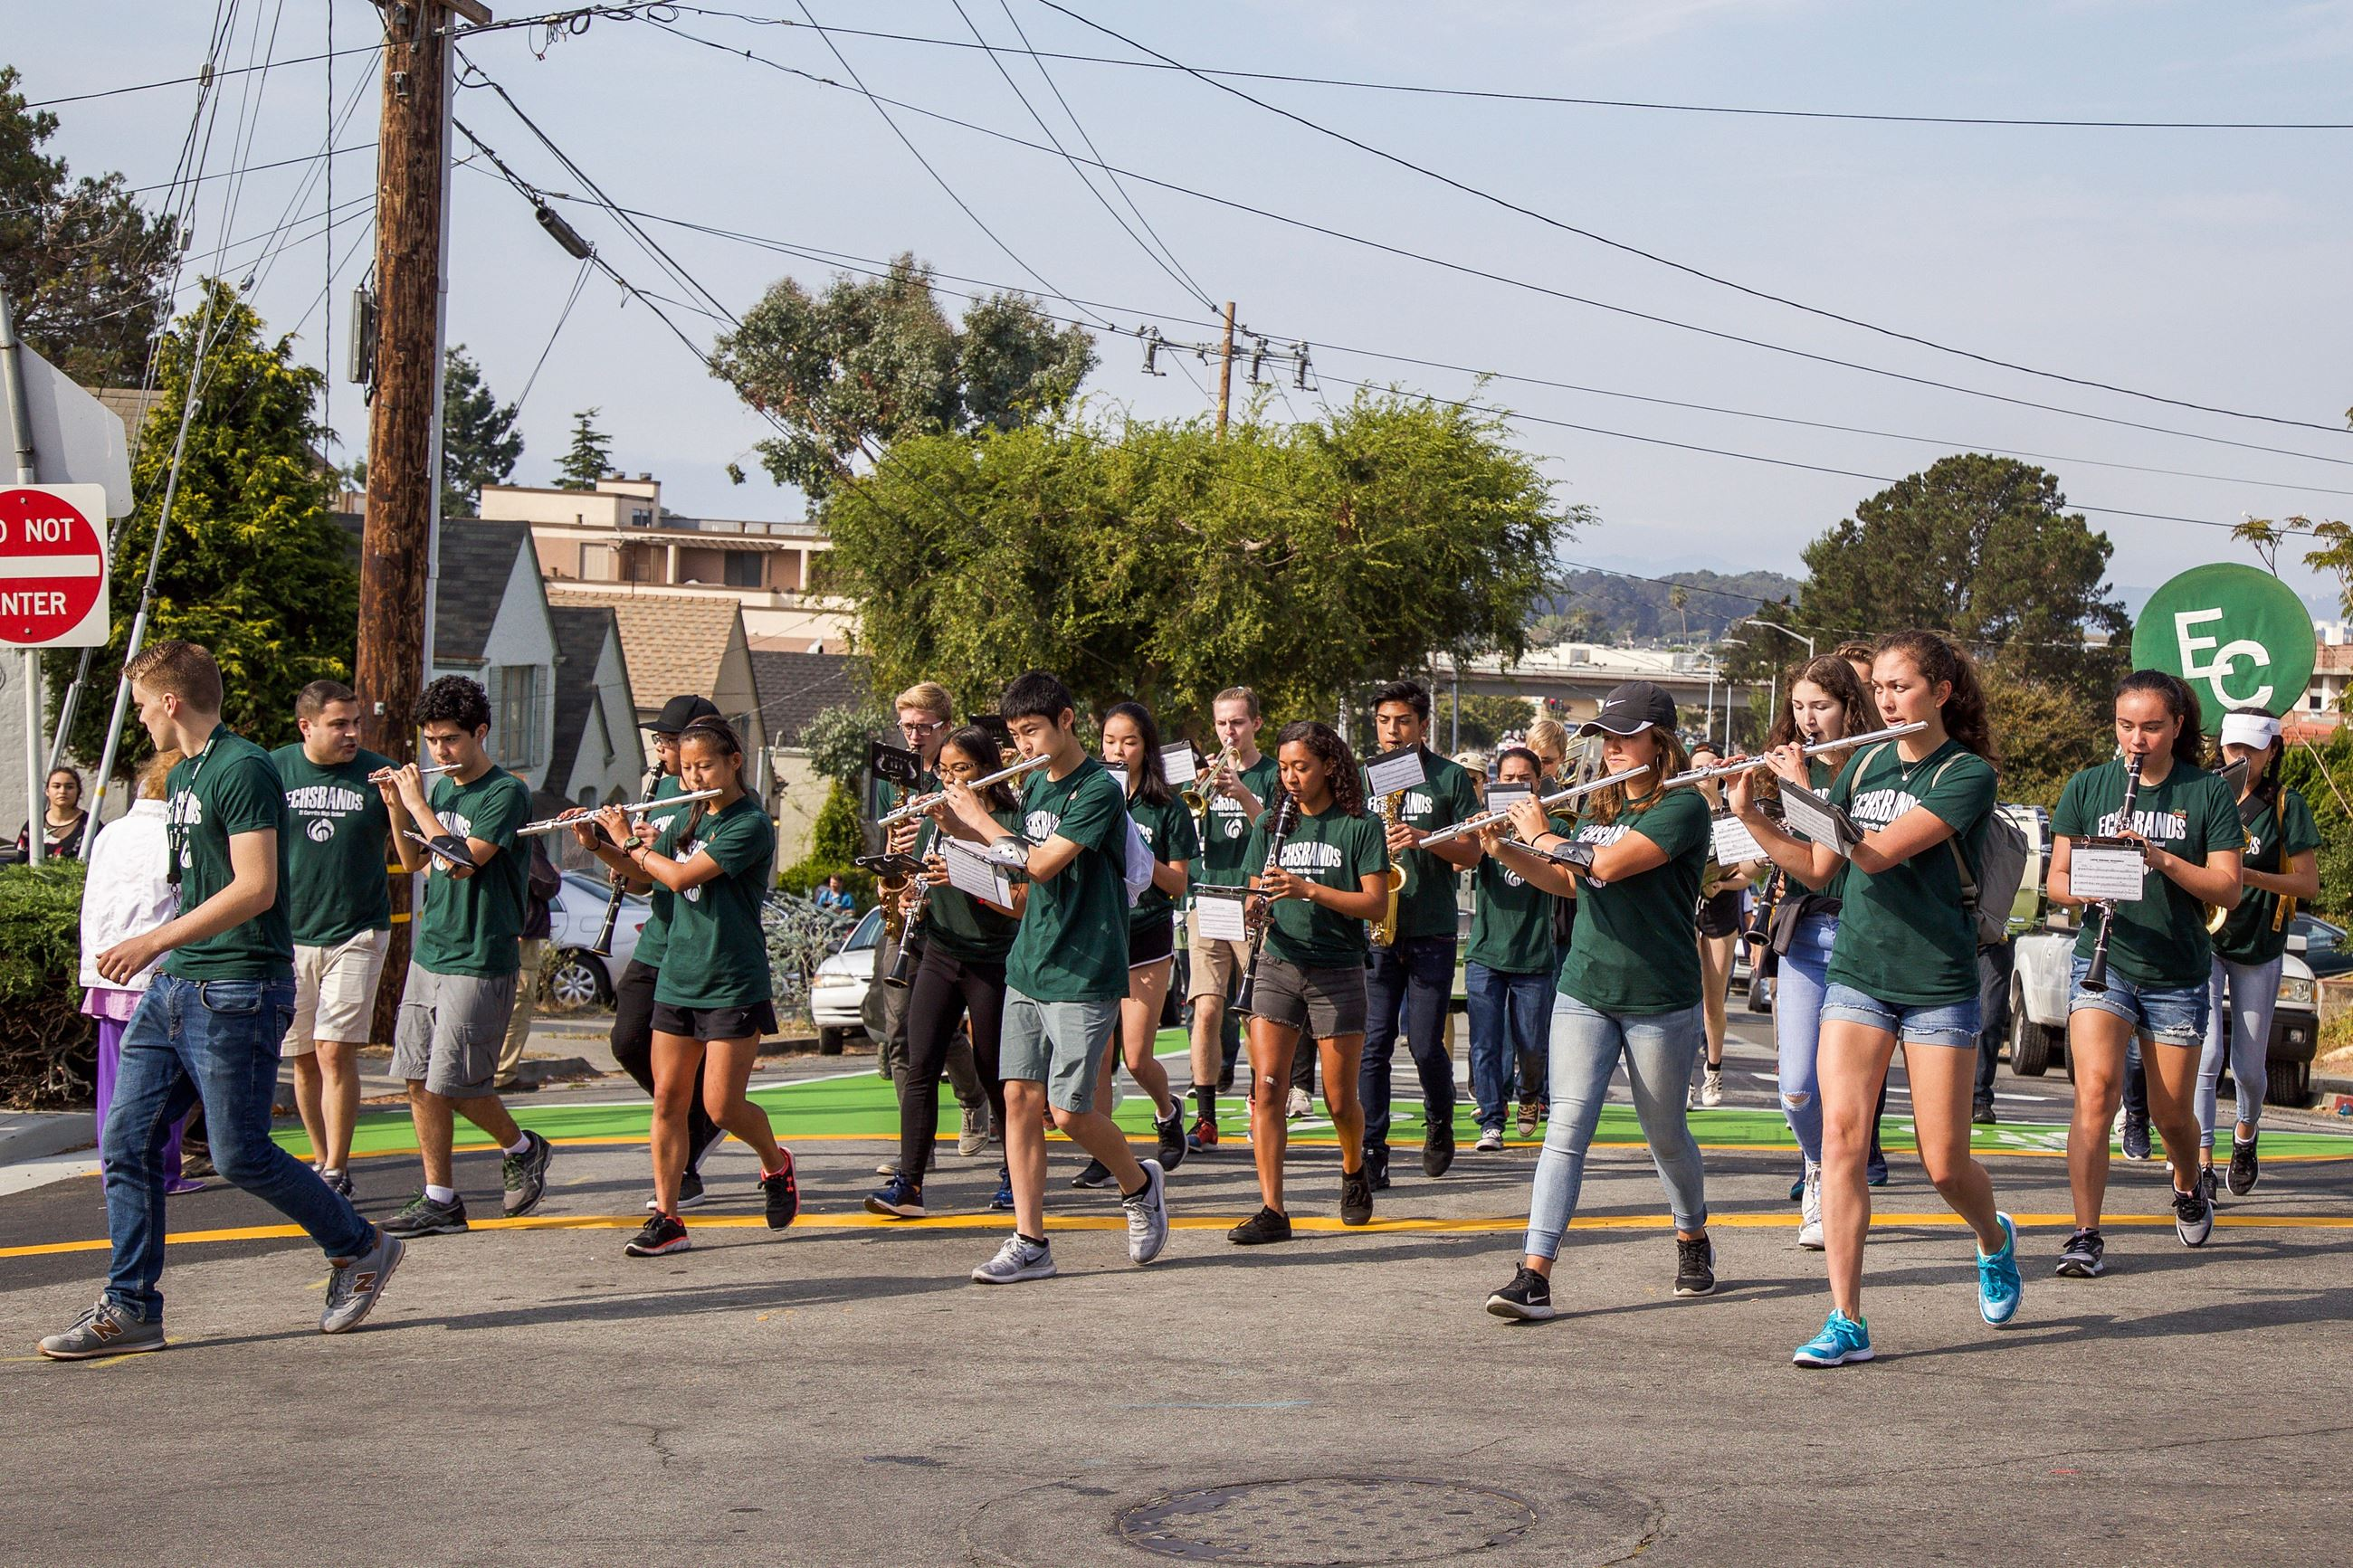 210 ECHS band in Parade 3- Photo by Marin Stuart